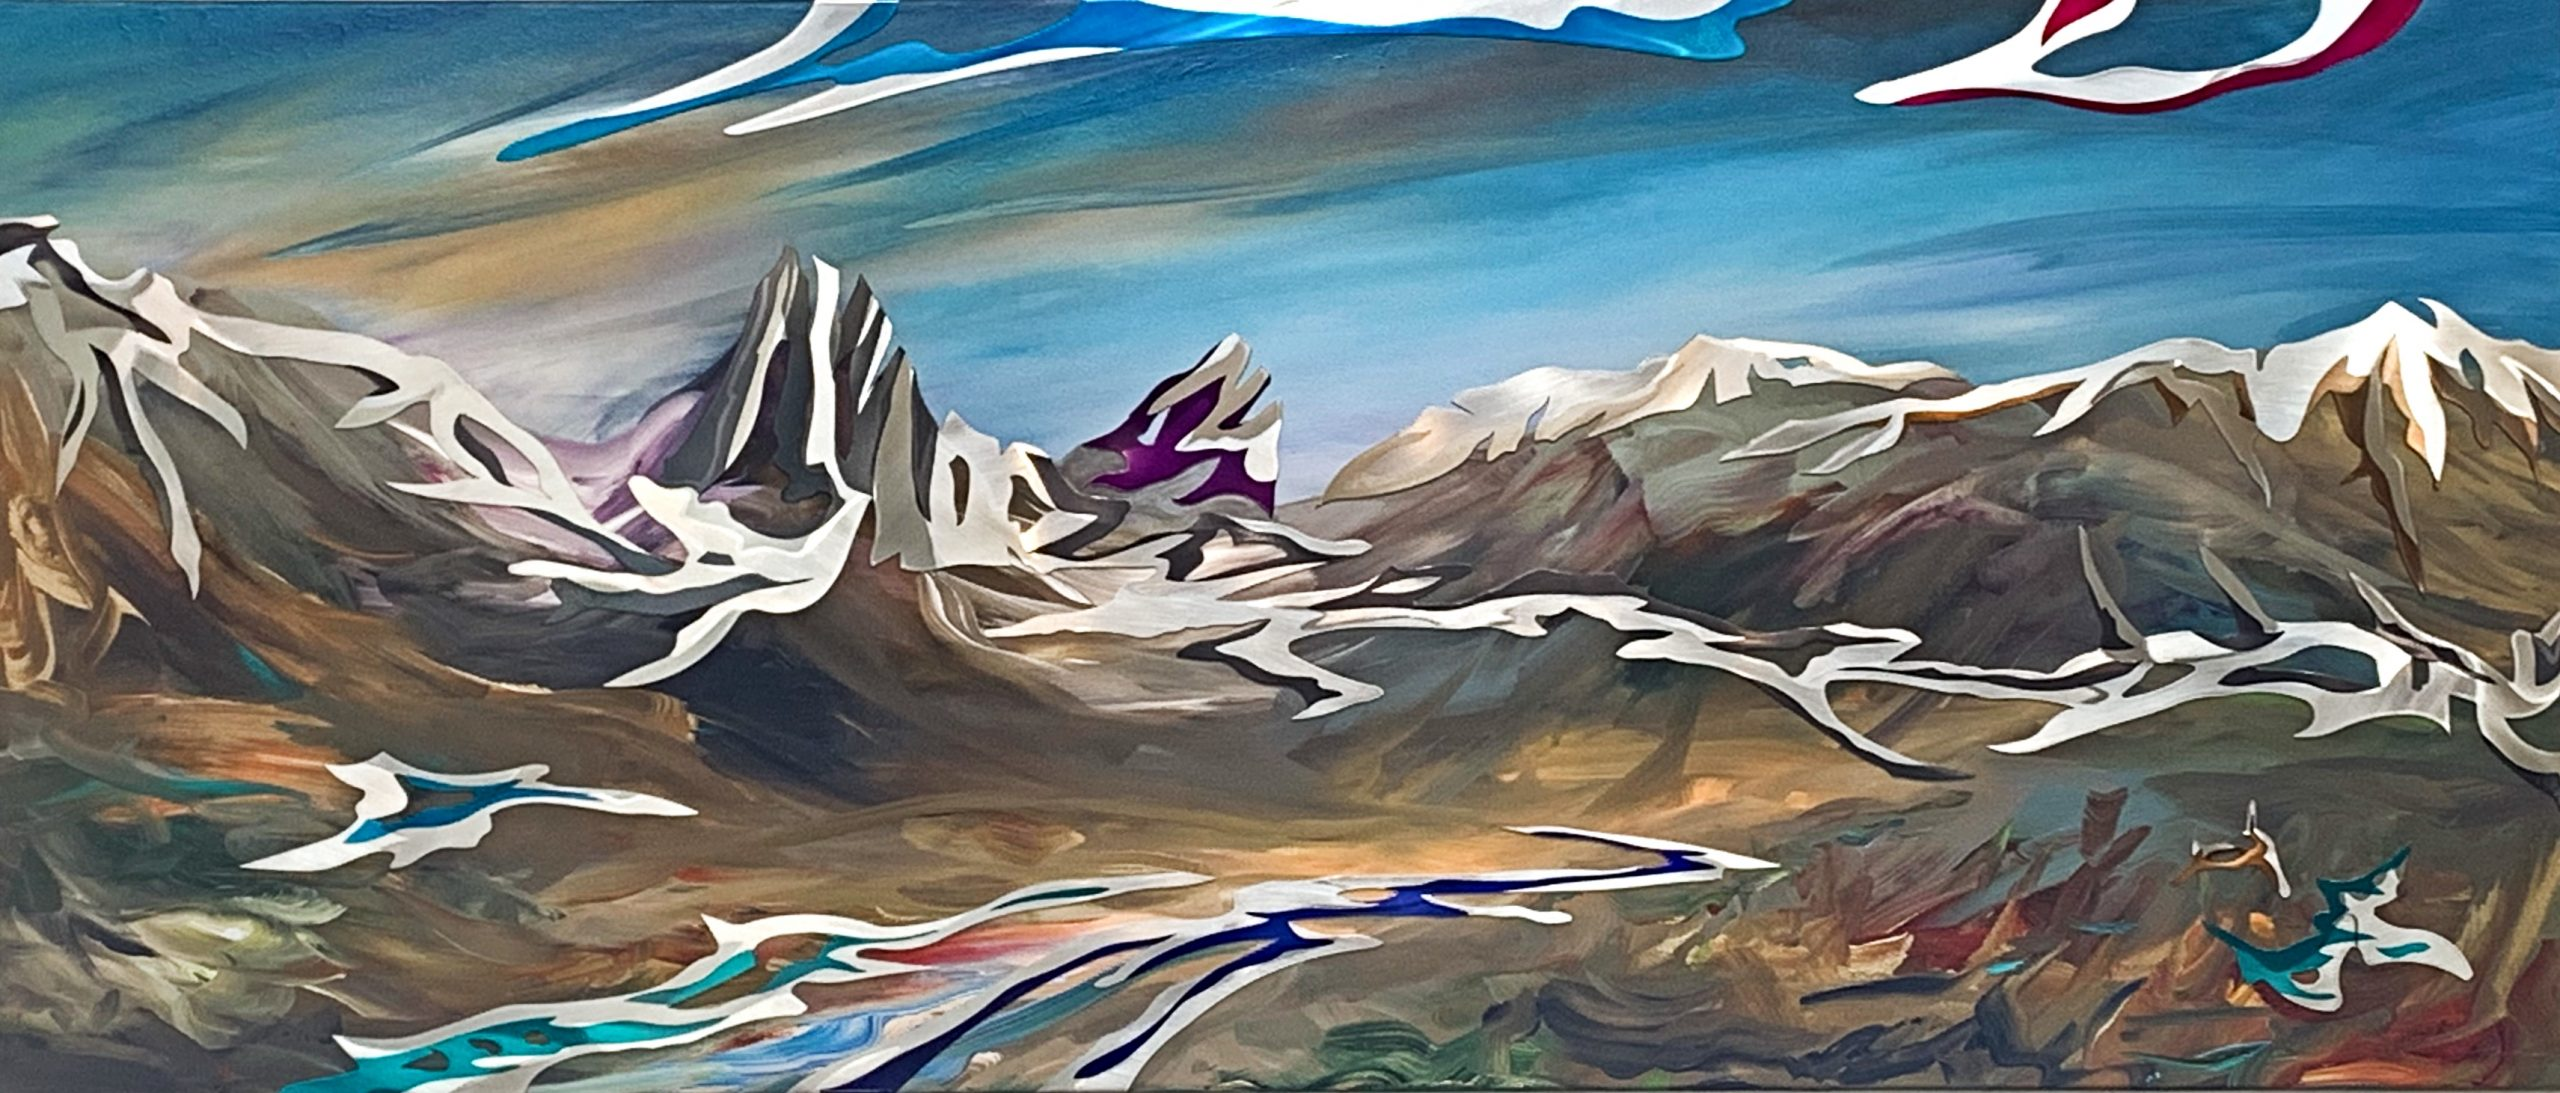 Looking Back, mixed media landscape painting by Joel Masewich | Effusion Art Gallery + Cast Glass Studio, Invermere BC